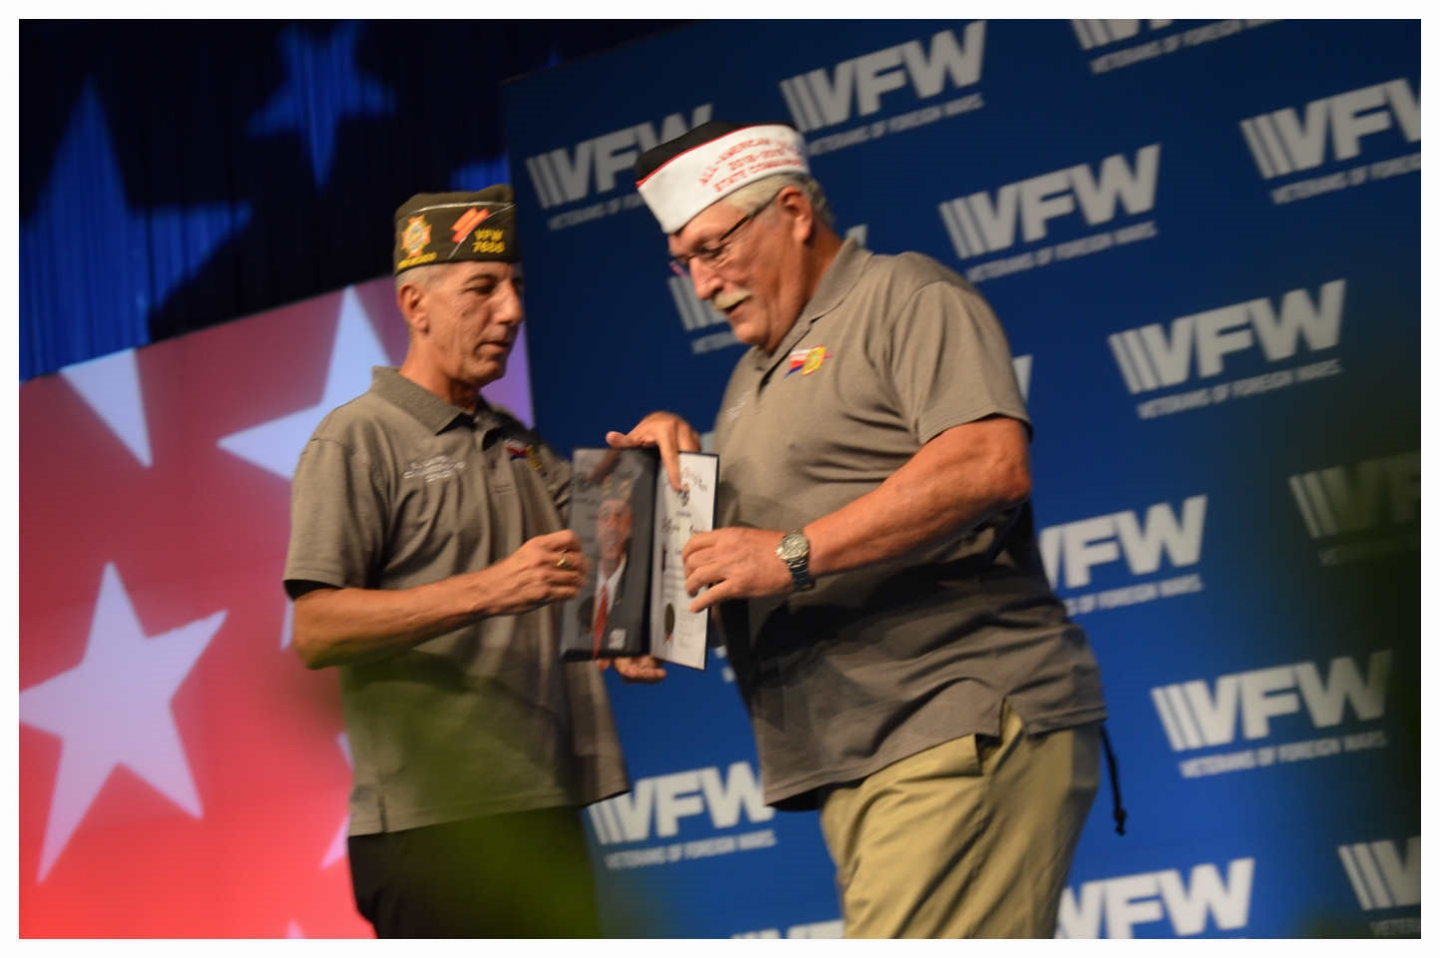 VFW Department of Ilinois Past Commander Don Boyer accepts Certificate from Commander in Chief BJ Lawrence for attaining All American status